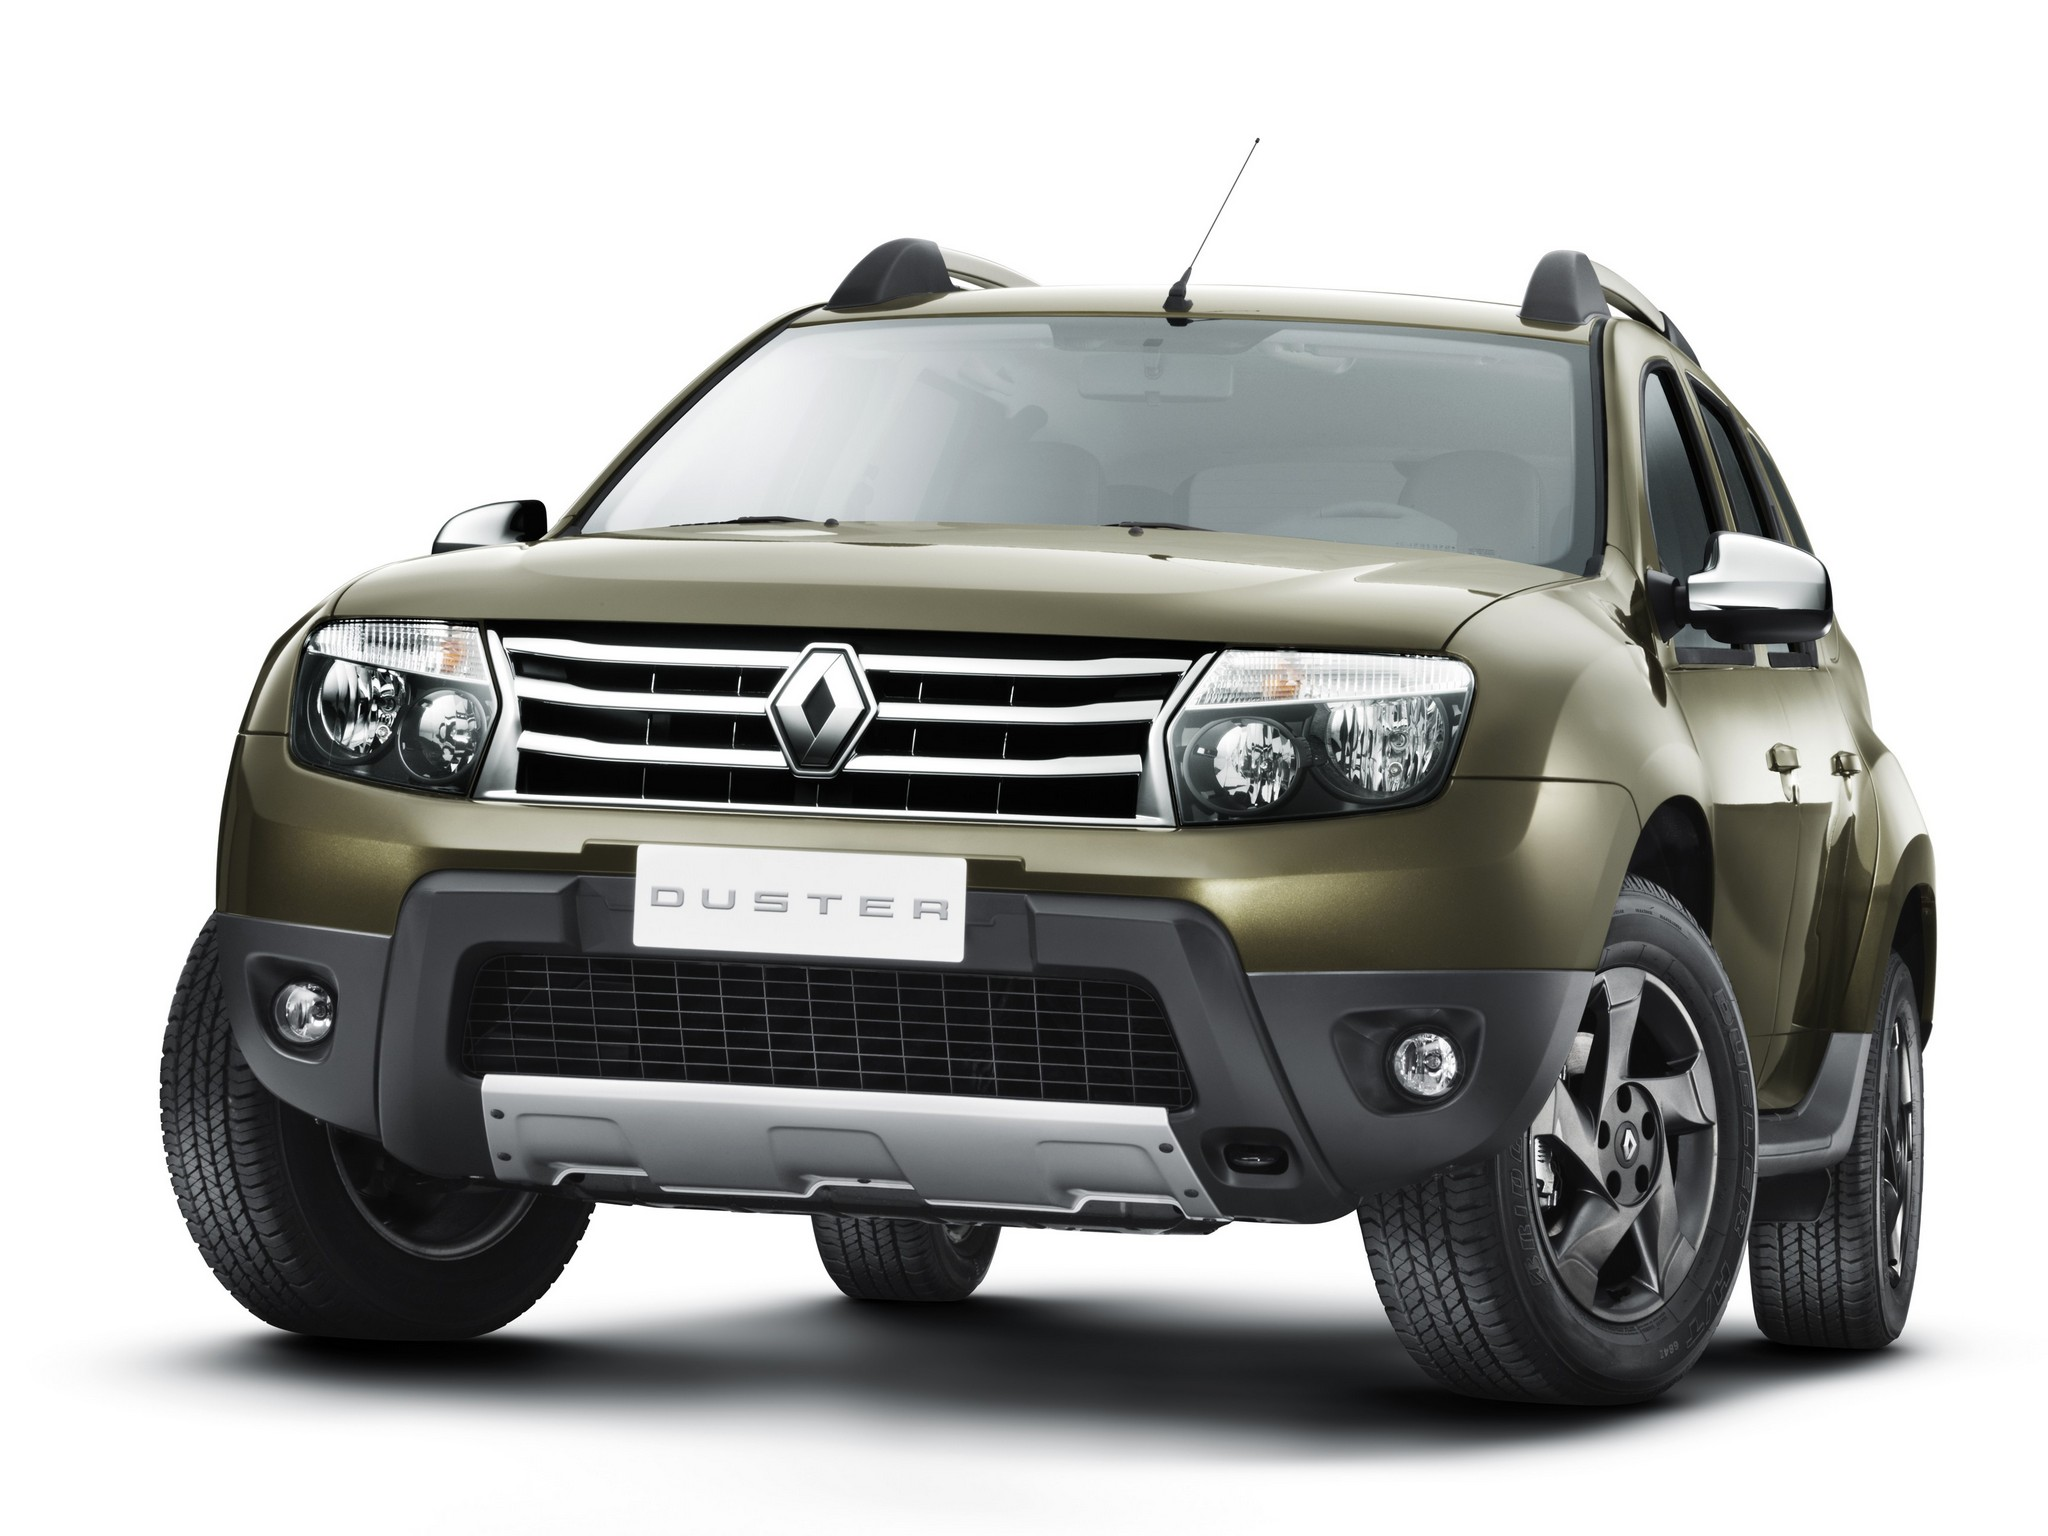 Renault Duster Online Booking, Mileage, Feature and Price In India